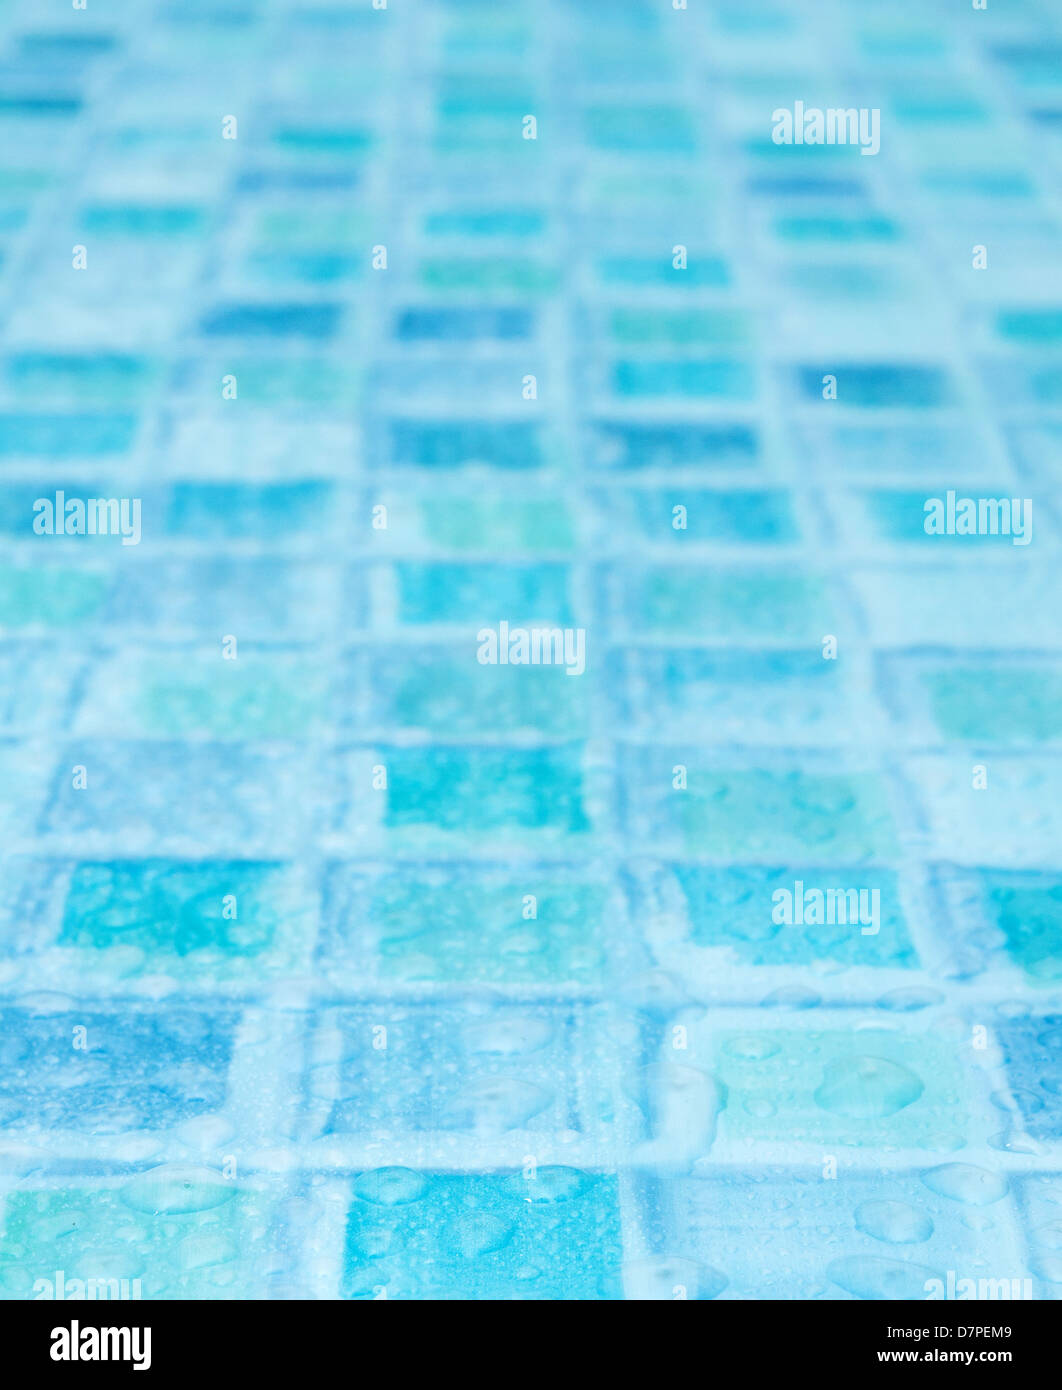 Blue Tiles in Bathroom With Water Drops - Shallow Depth of Field - Stock Image